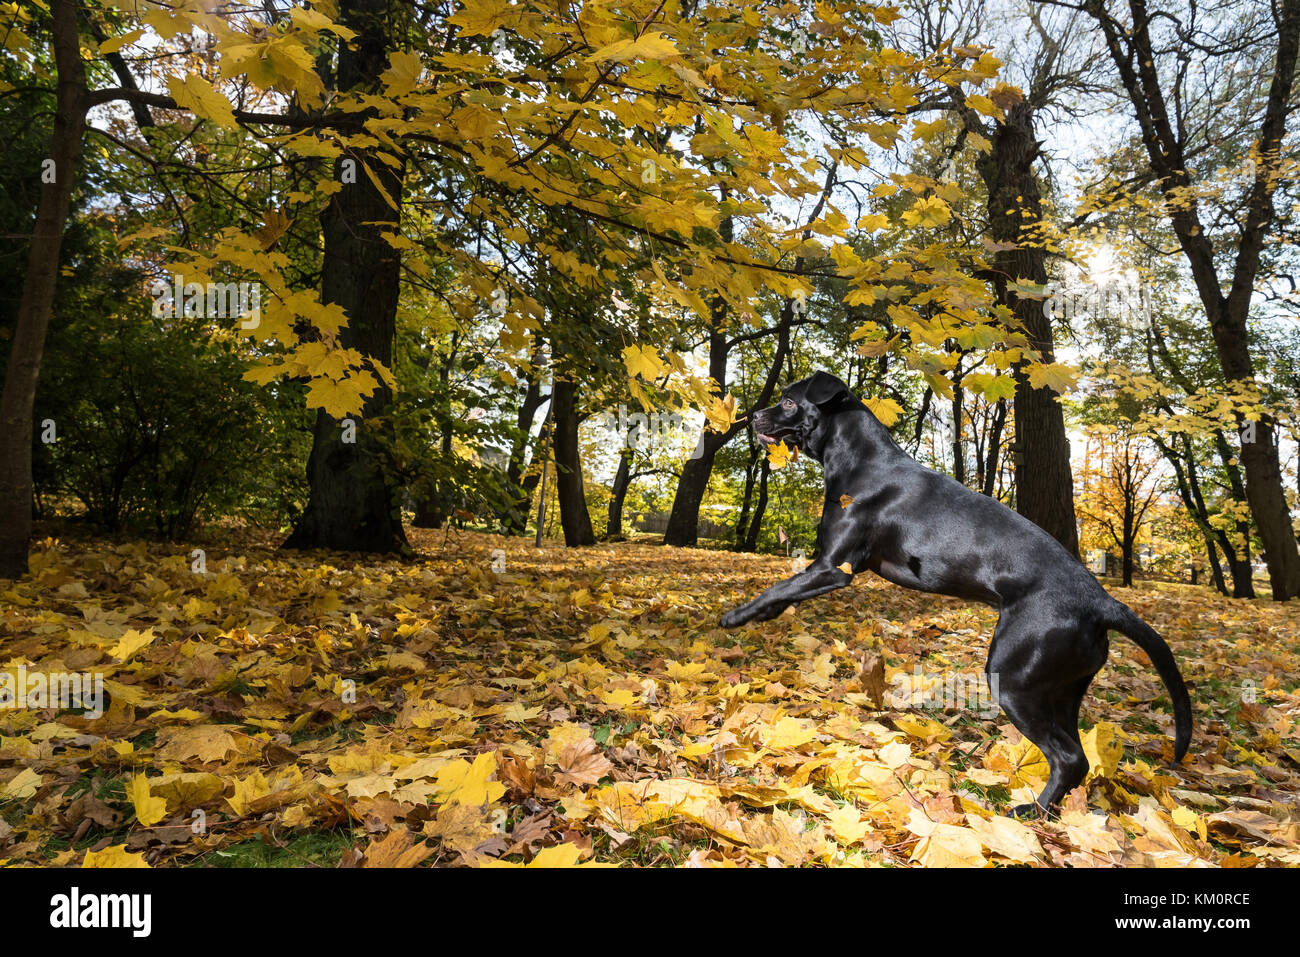 Portrait of a Cane Corso dog breed on a nature background. Dog playing on the grass with colored leaves in autumn. - Stock Image